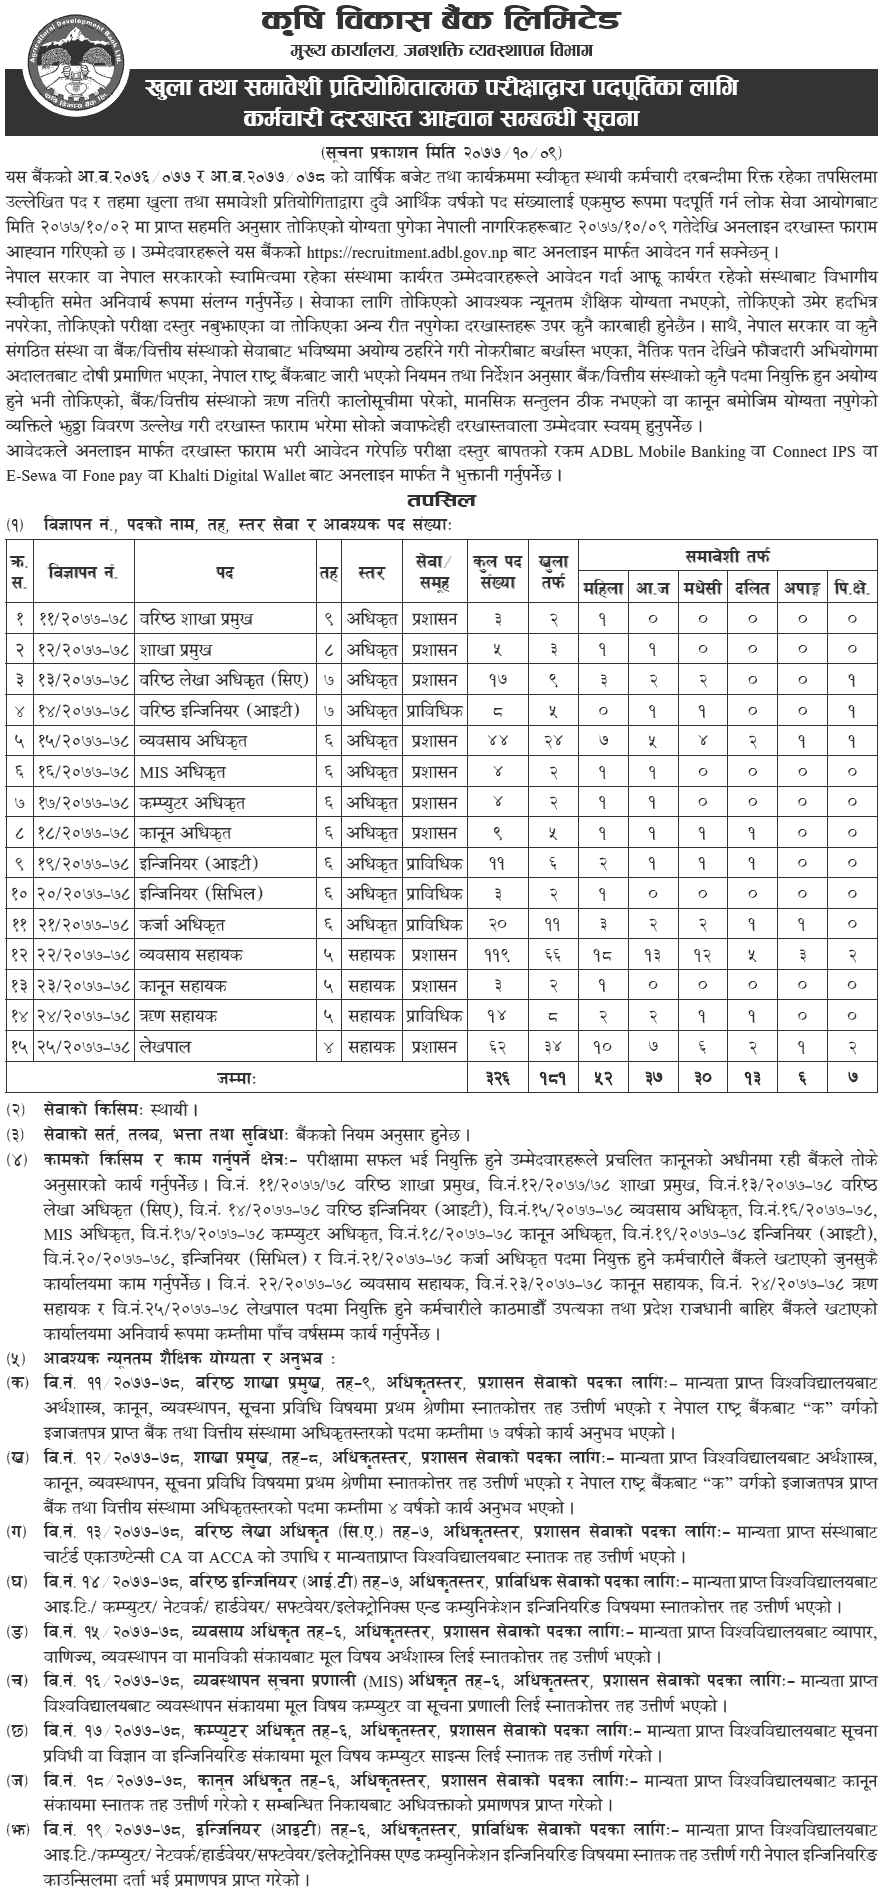 Agricultural Development Bank Limited (ADBL) Vacancy 2077